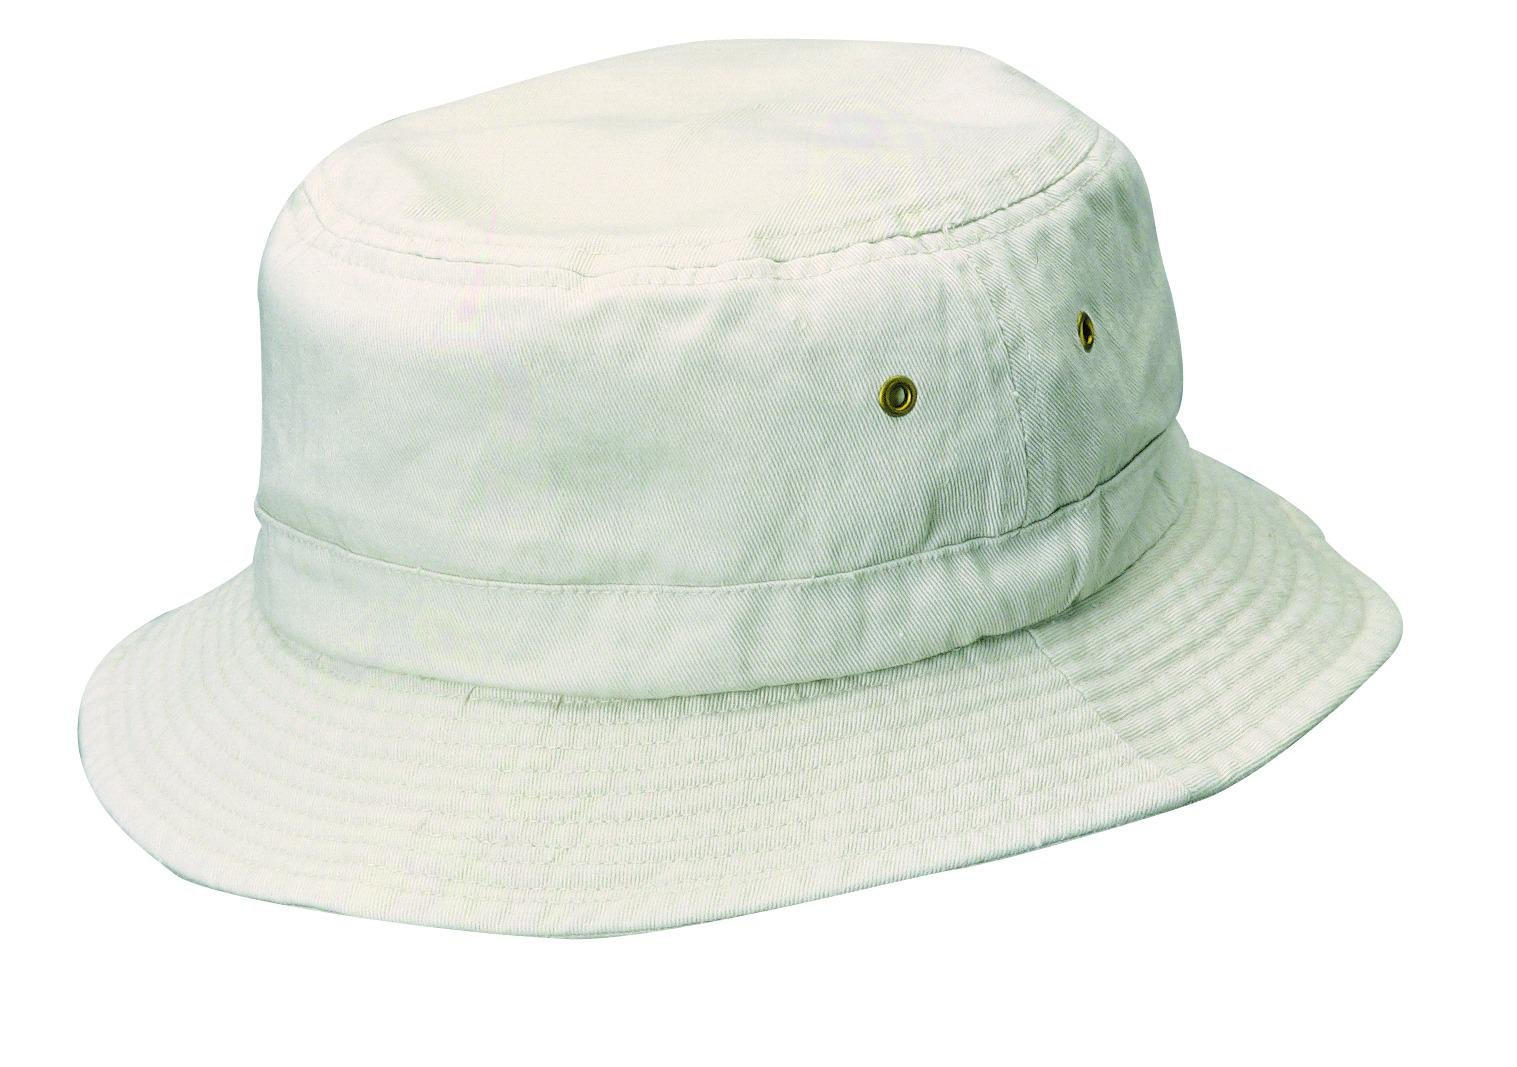 Dorfman Pacific Kids Cotton Classic Summer Outdoor Bucket Hat, Small/Medium